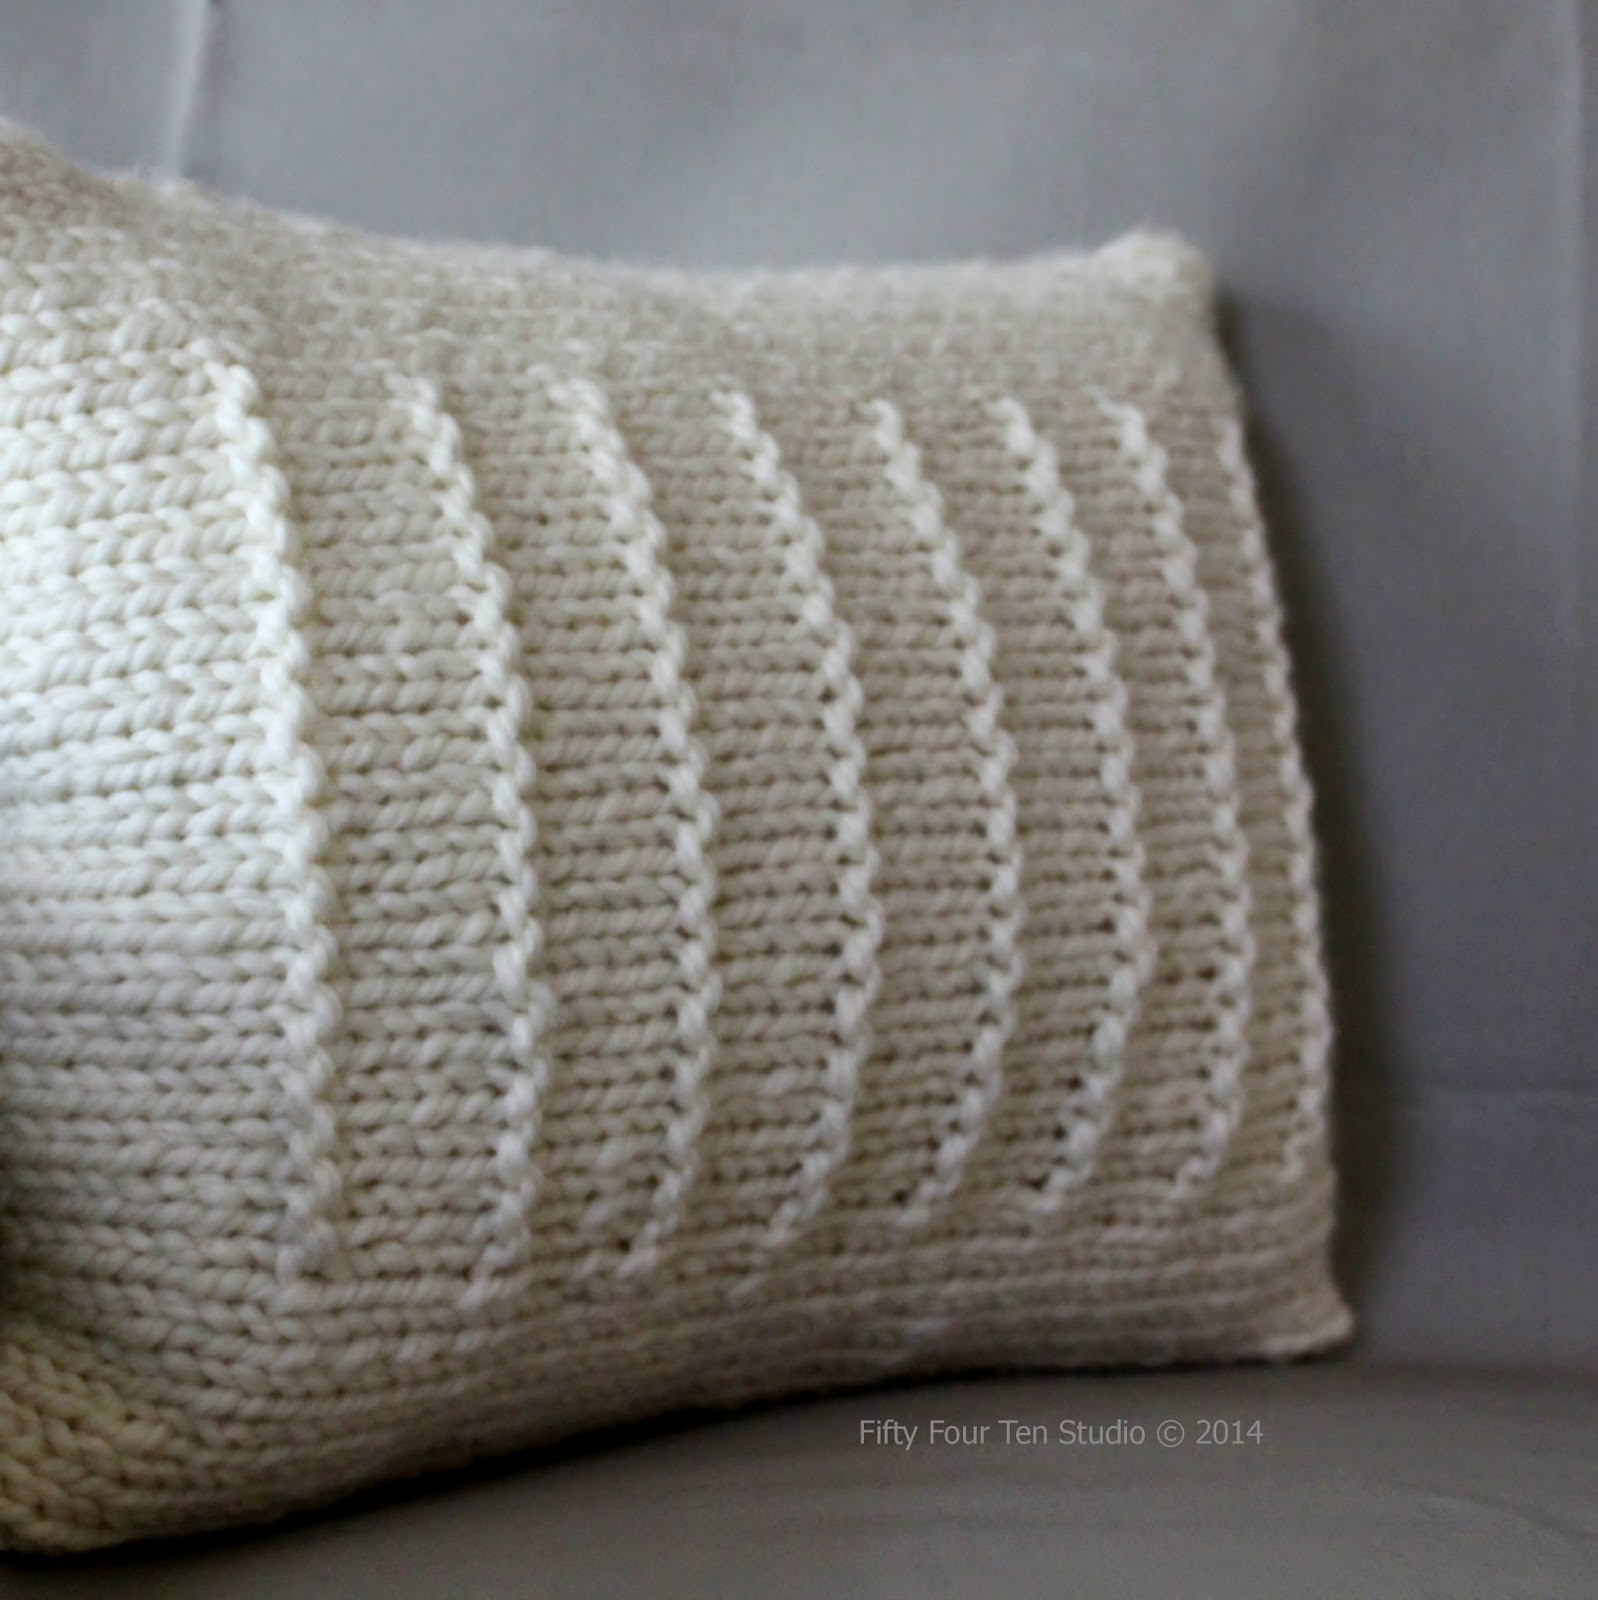 Knitting Pillow Pattern : Fifty four ten studio knitting with super bulky yarn